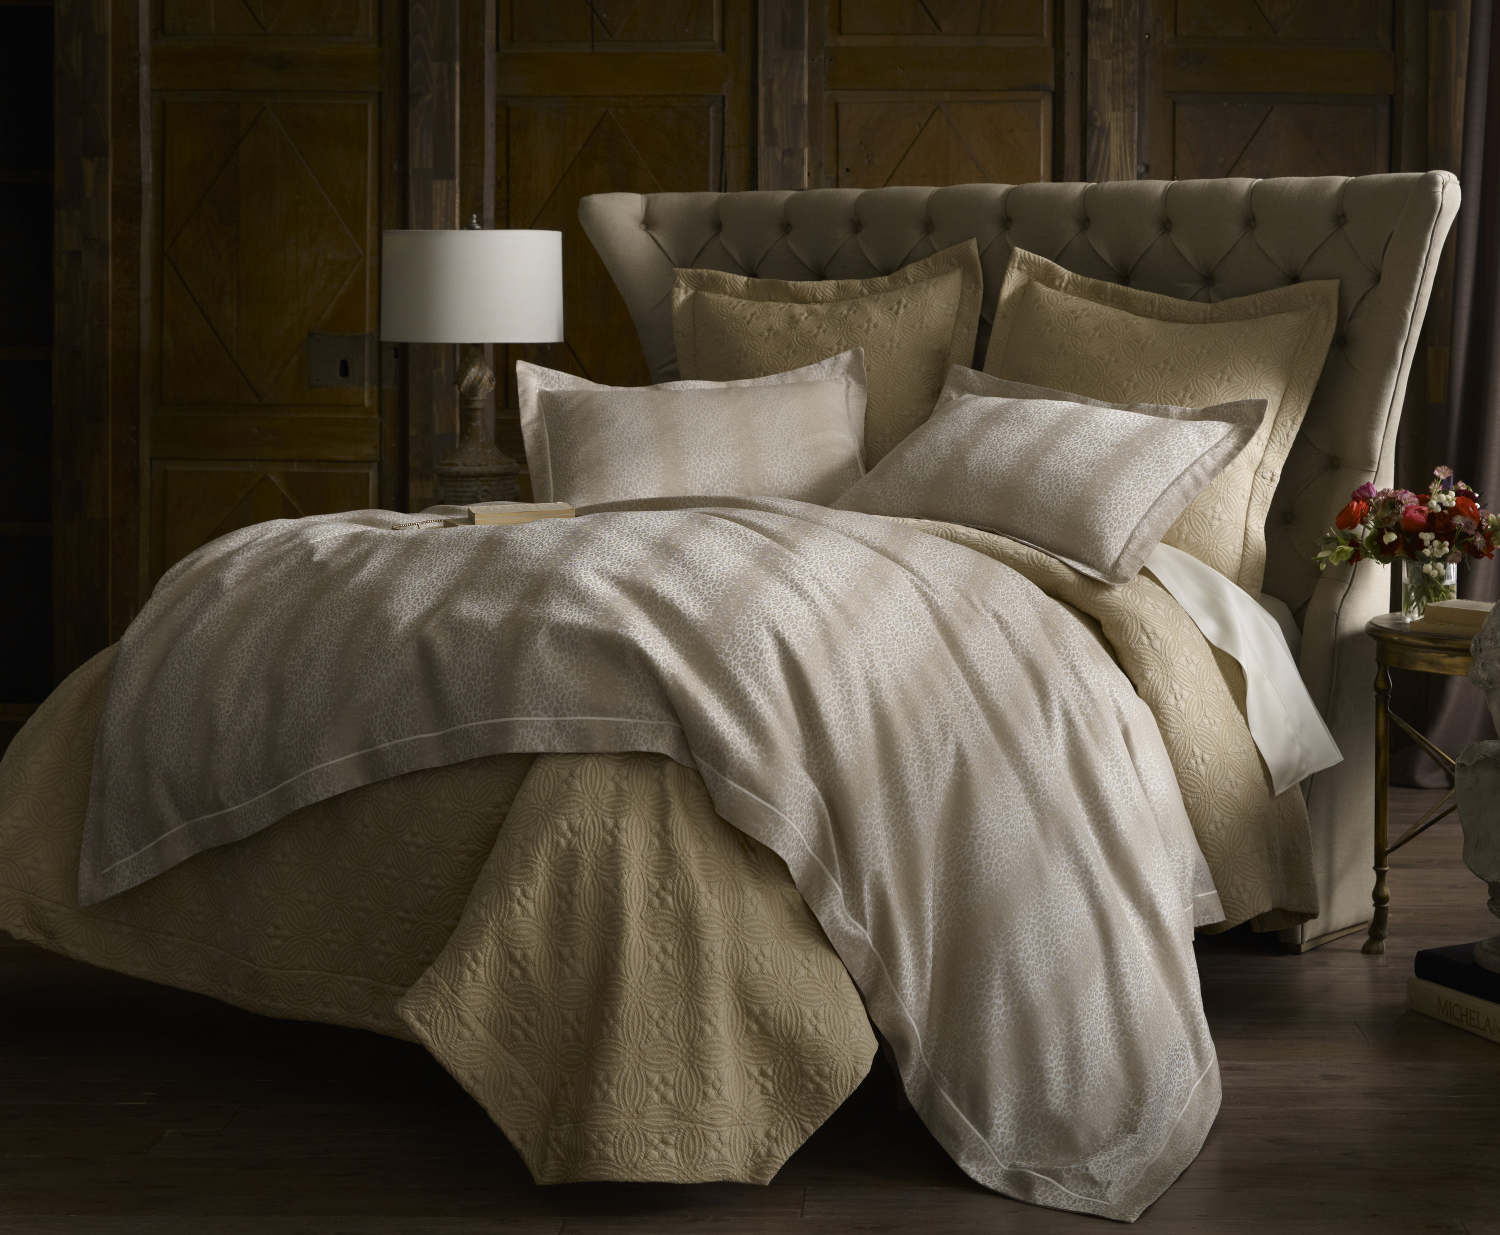 Uuu Peacock Alley Leopold Duvet And Shams And Decorative